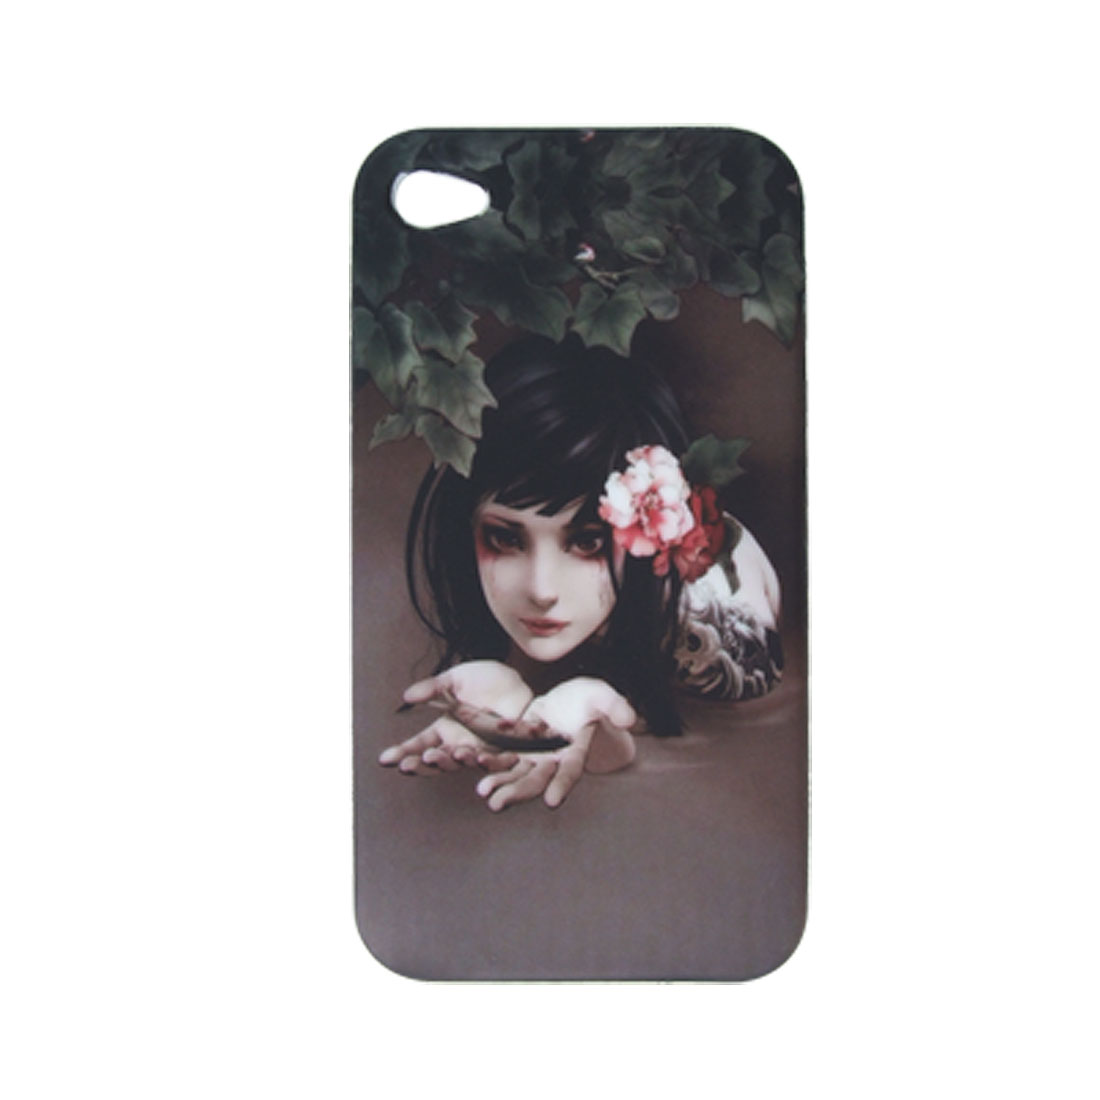 Non-mainstream Girl Printed Soft Plastic Skin for iPhone 4 4G